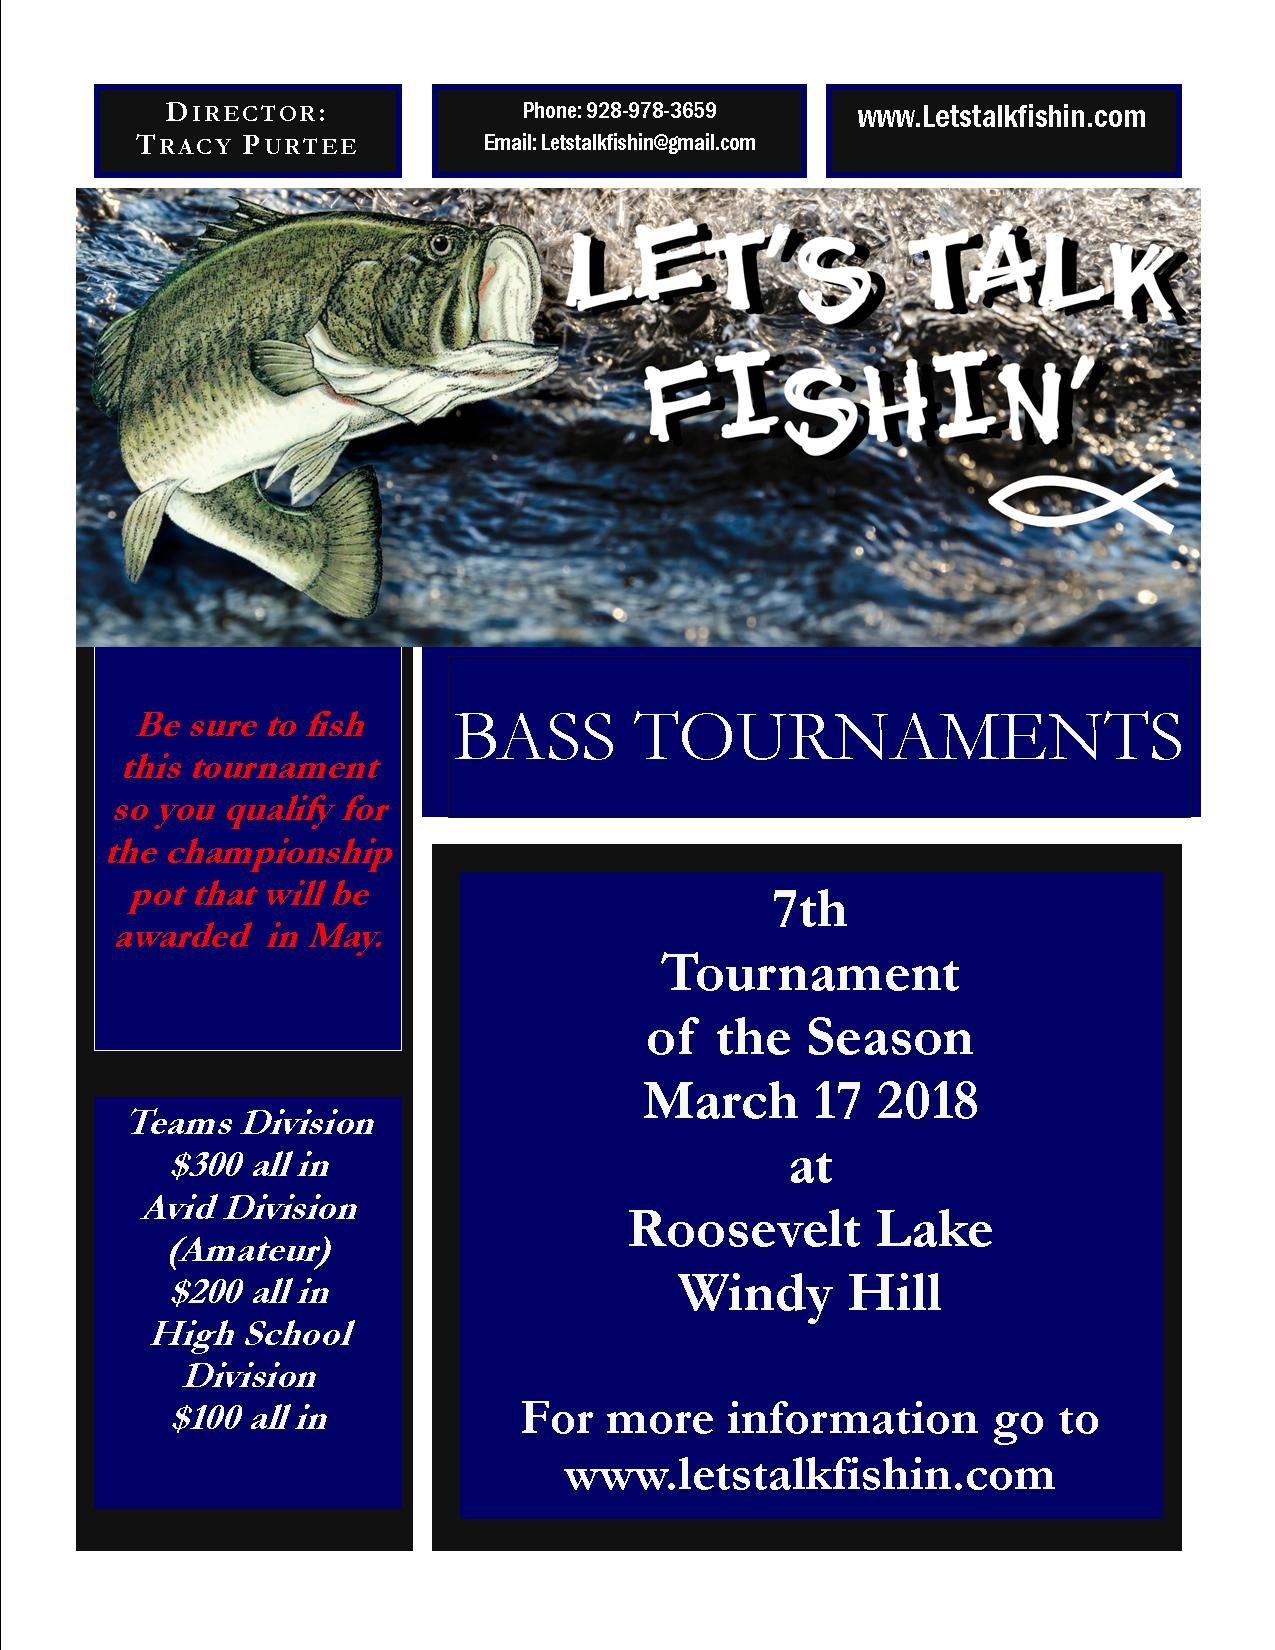 Click image for larger version  Name:7th Tournament.jpg Views:1777 Size:283.6 KB ID:96826